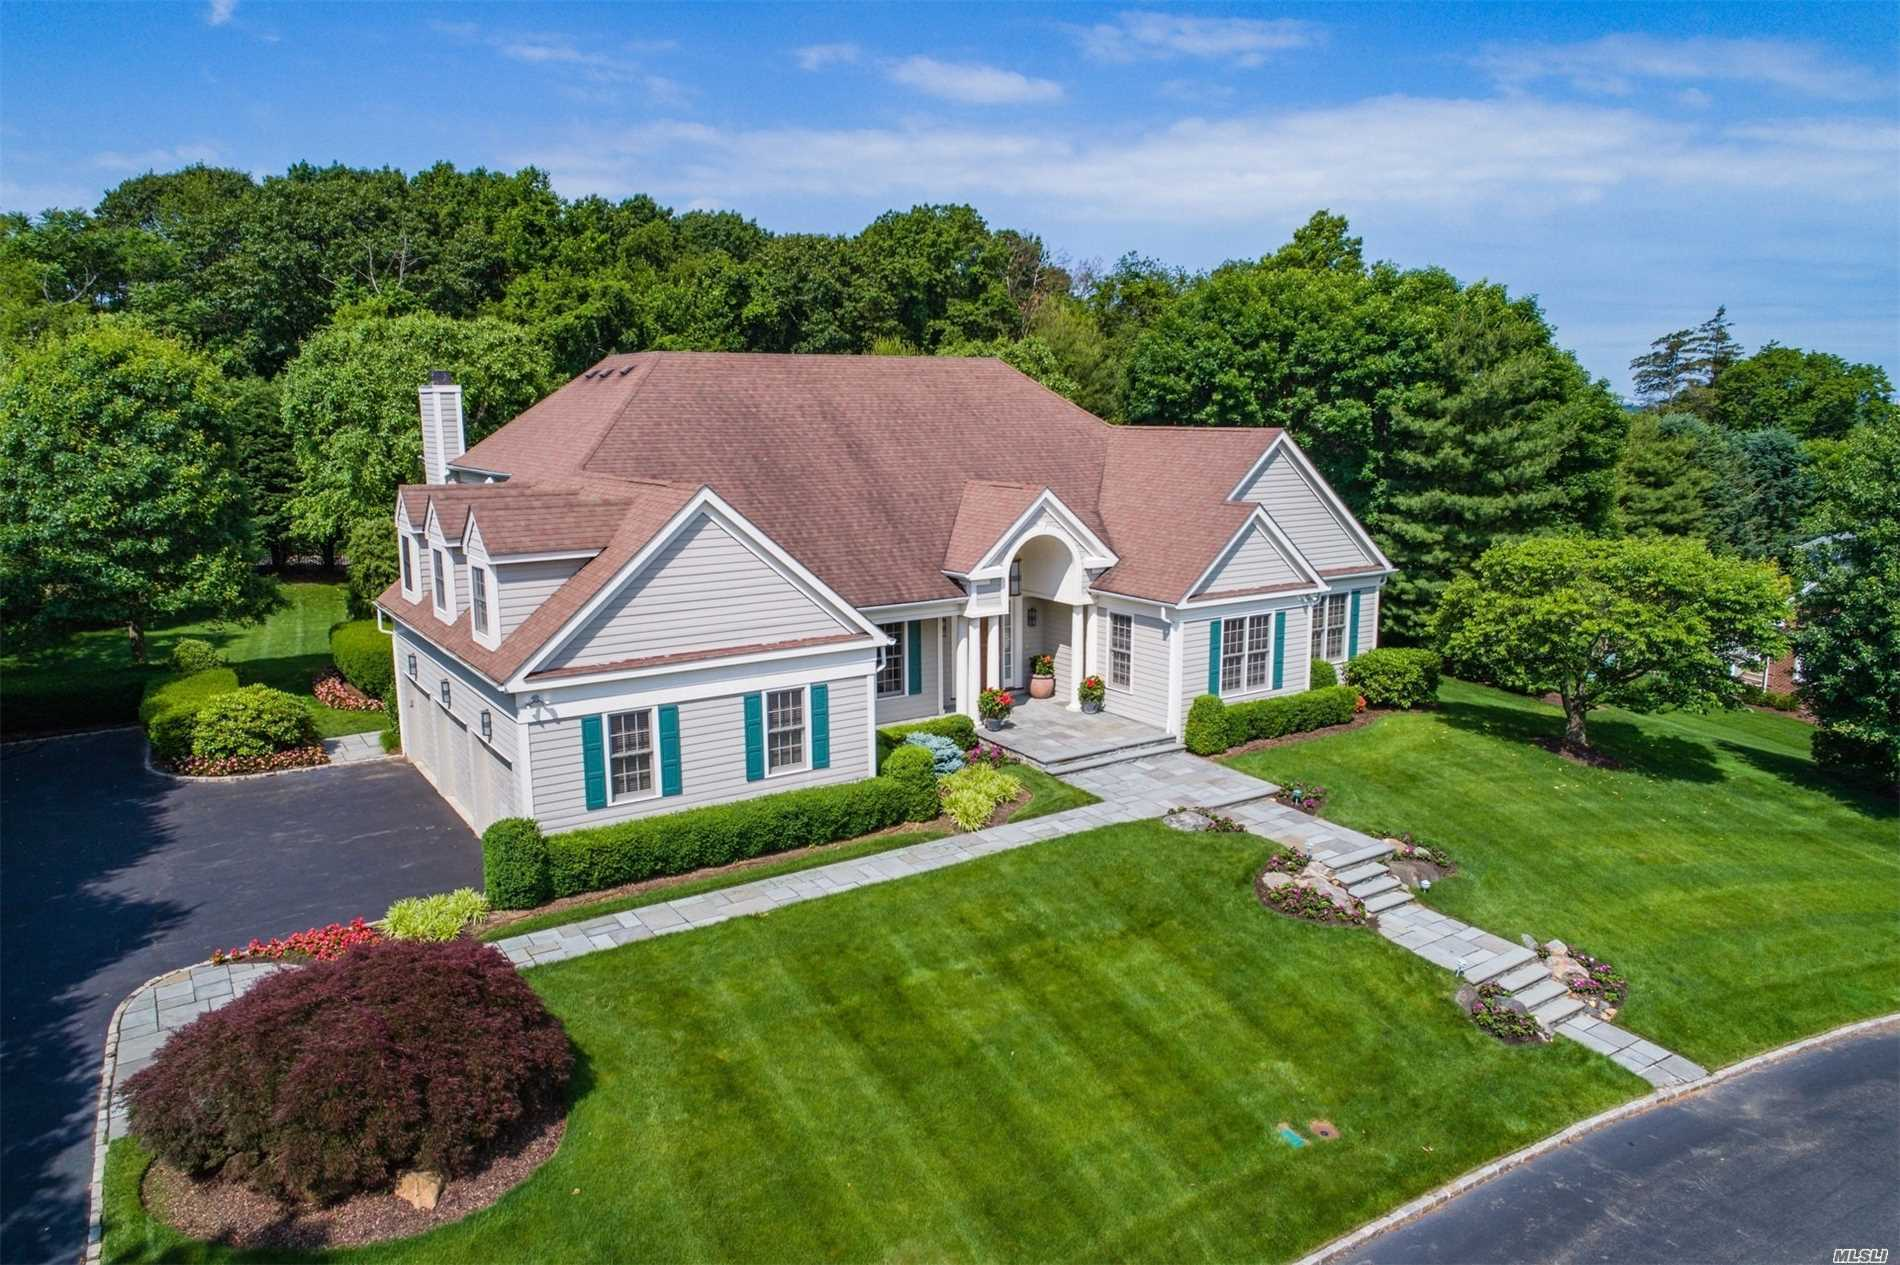 Luxurious Living In Gated Community Of Stone Hill, This 4-Bedroom Showpiece With Extraordinary Architectural Details Sits On .7 Park-Like Acres And Offers Opening Living Room W/30 Ft. Ceilings, Fdr, Custom Eik Adjacent To Family Rm W/Fpl & Floor-To-Ceiling Windows And Master Suite On Main Level With Large Walk-In Closets.